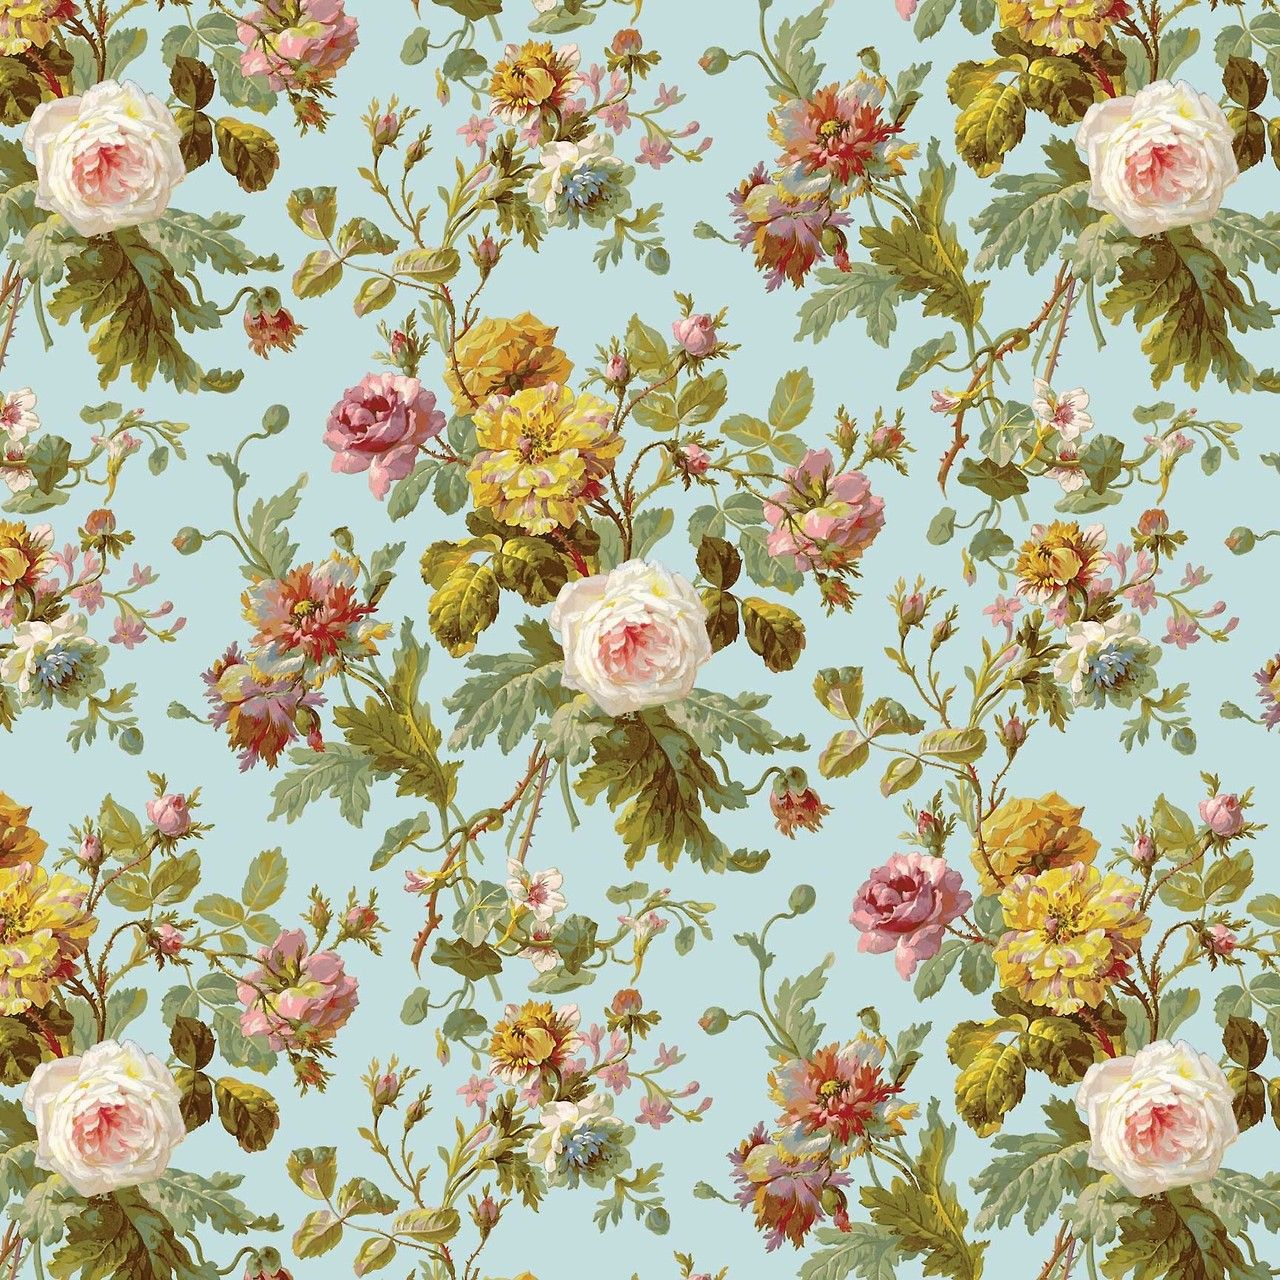 Vintage floral iphone wallpaper tumblr - Vintage Floral Pattern Vintage Floral Wallpaper Pattern Cool Hd Wallpapers